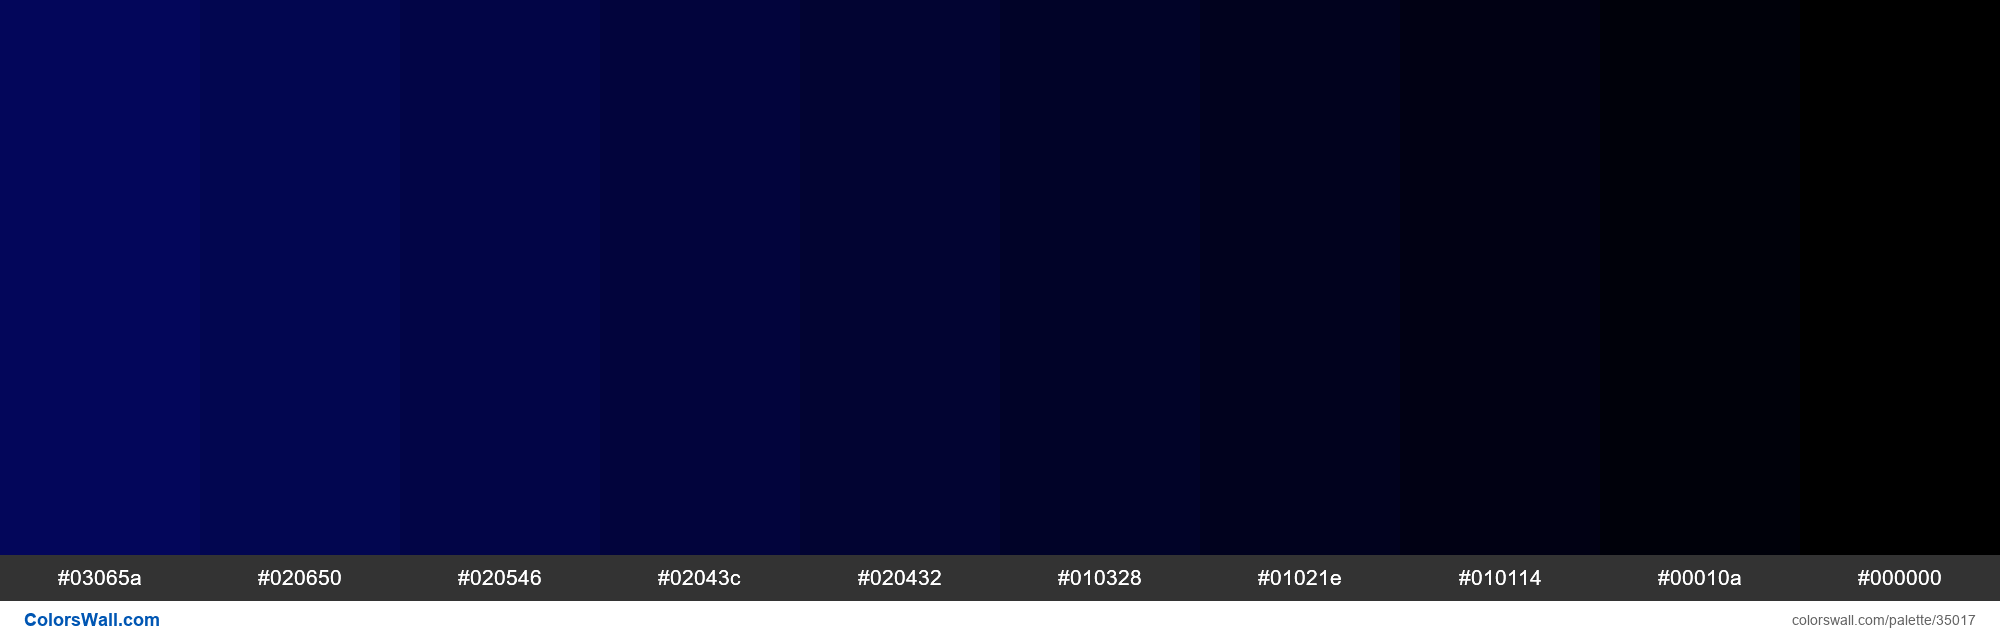 Shades Xkcd Color Darkblue 030764 Hex In 2020 Shades Of Dark Blue Dark Blue Paint Hex Colors